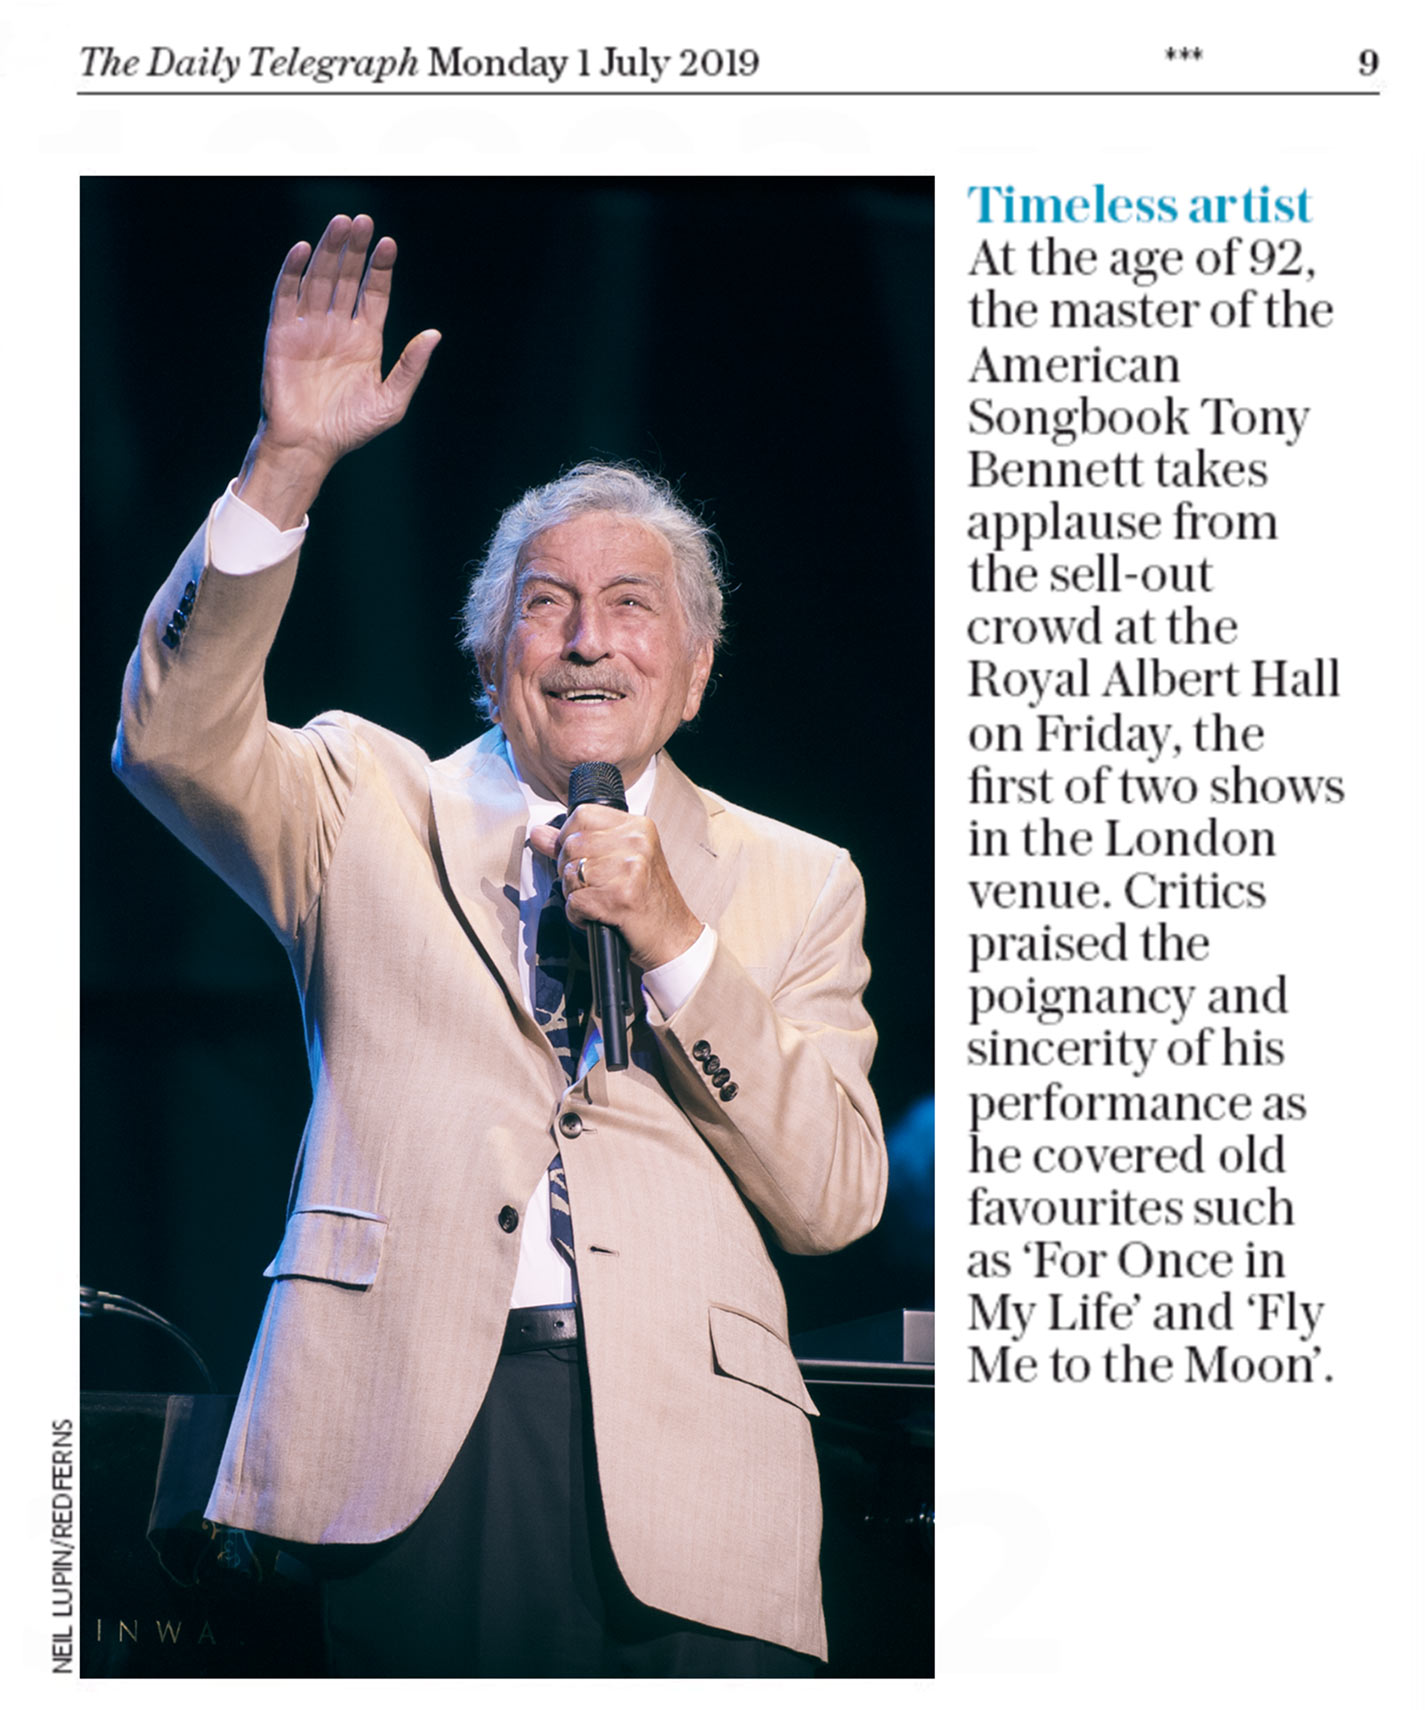 Tony-Bennett-Daily-Telegraph